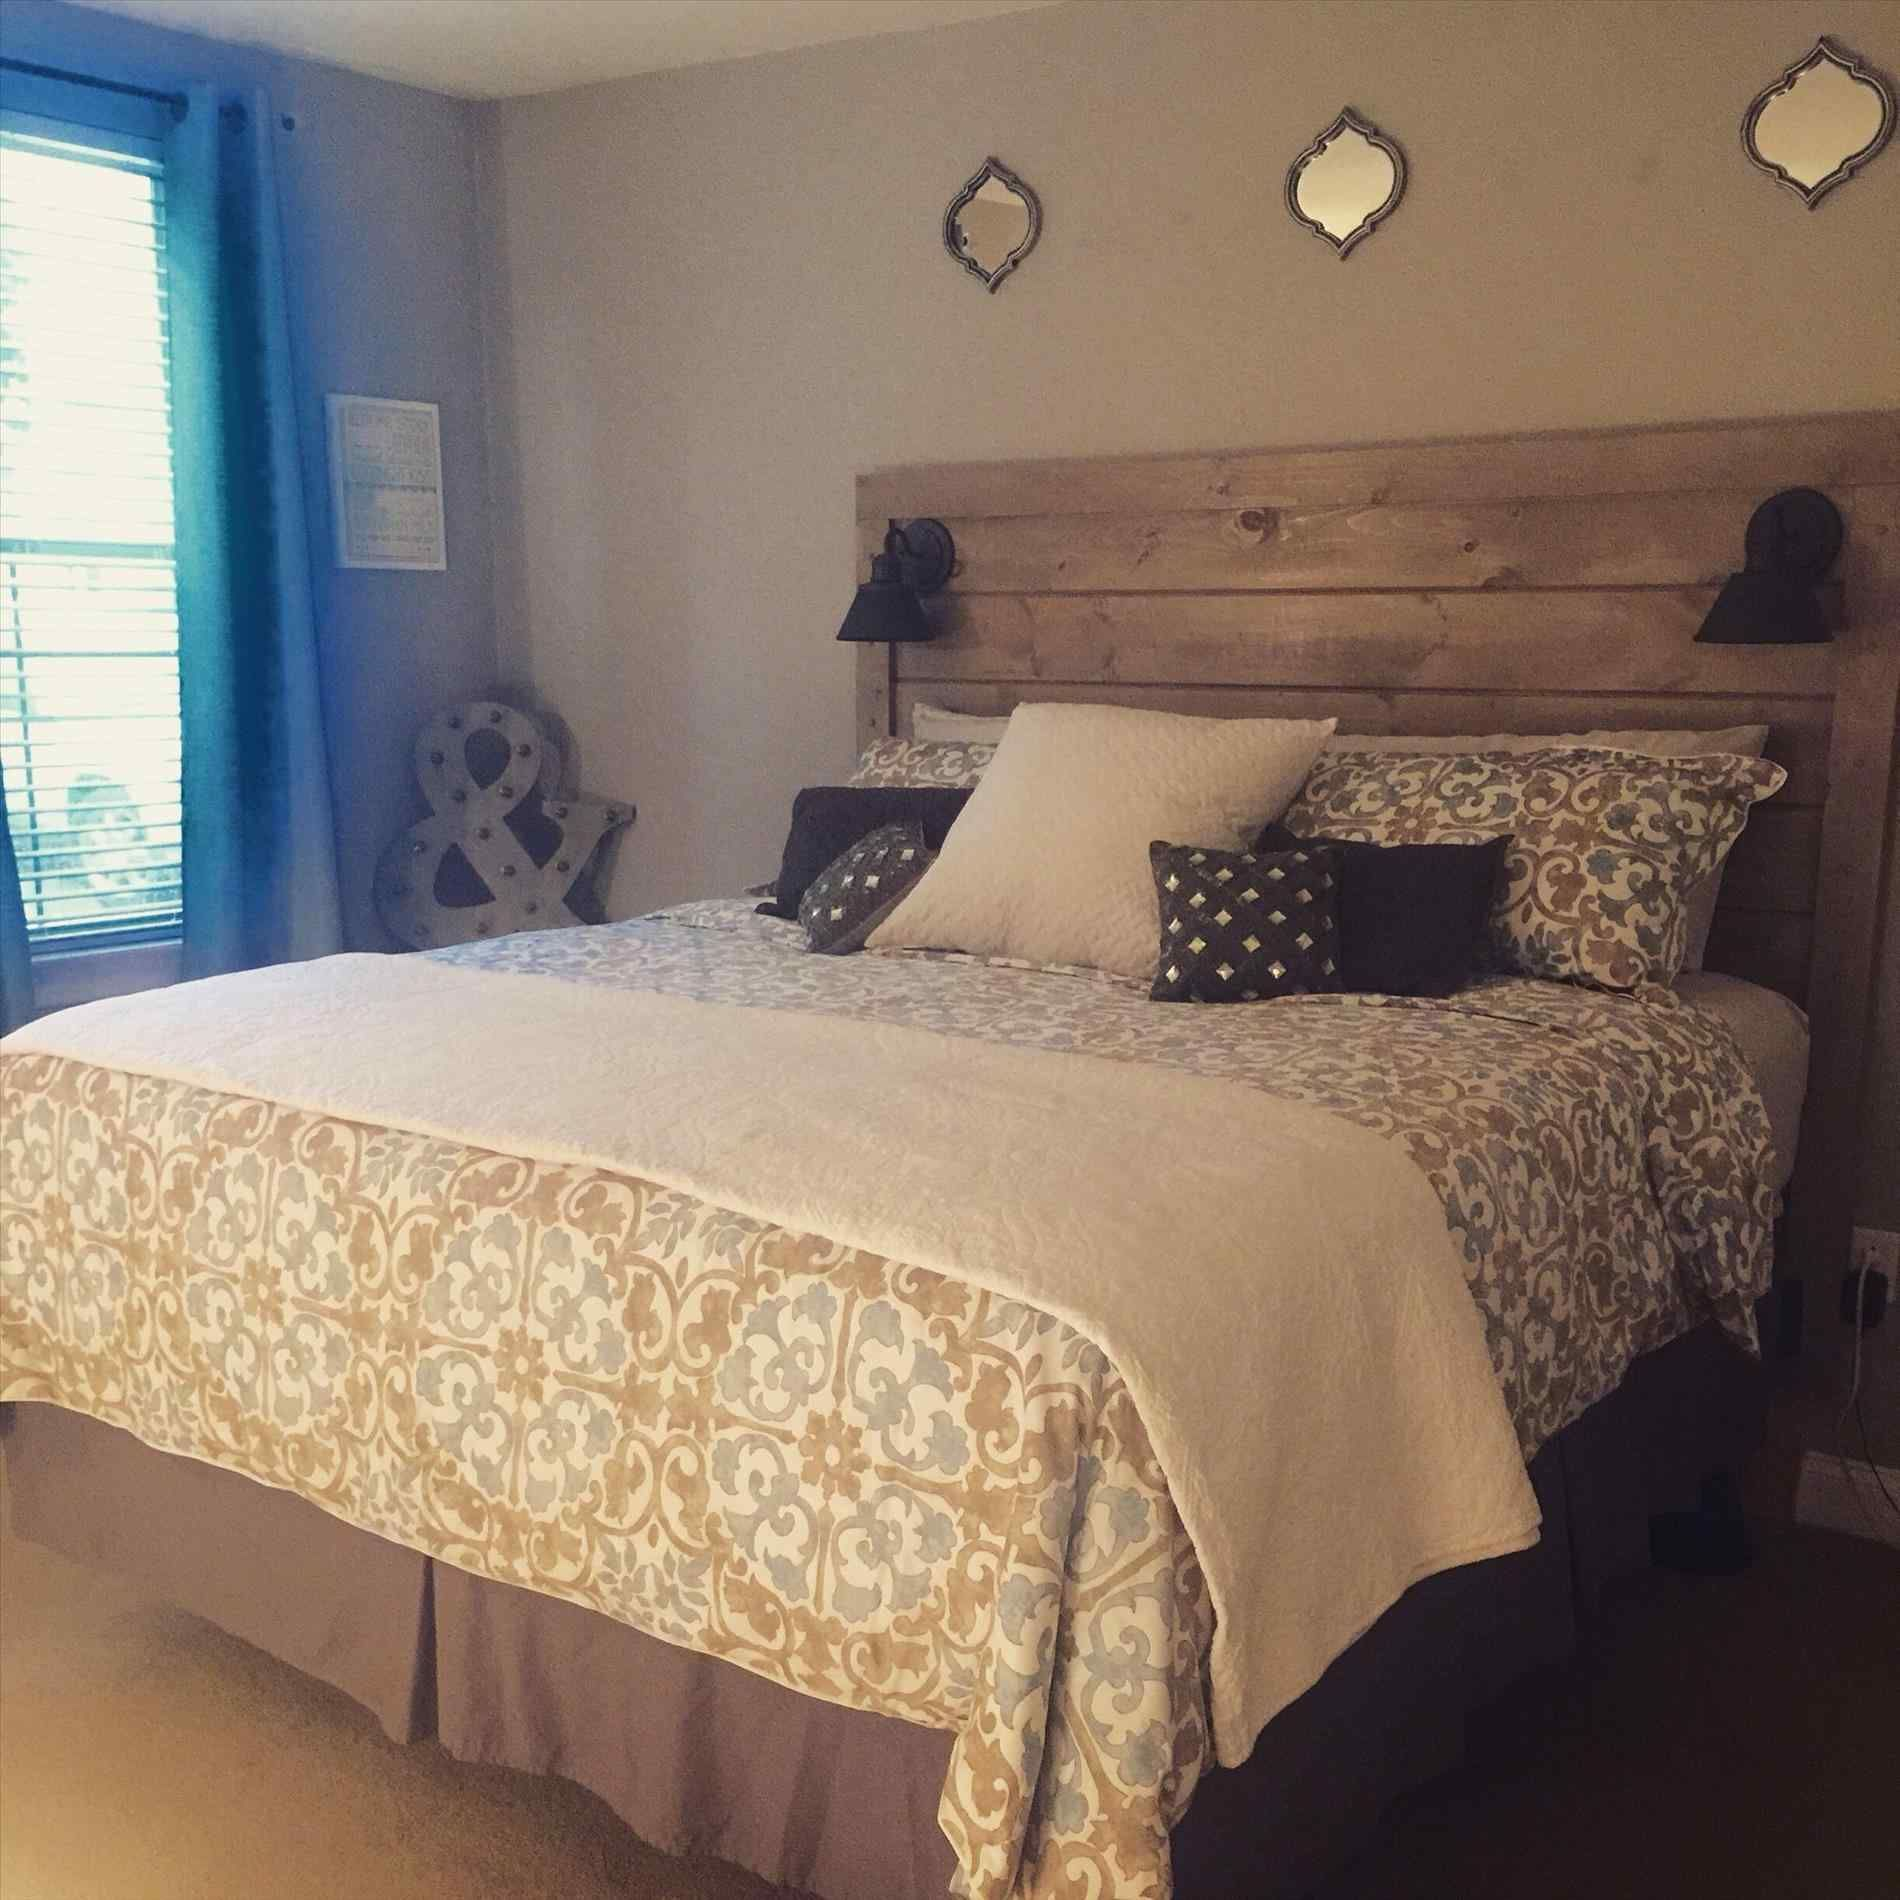 15 Top Unique Shiplap Bed Frame Ideas For Comfortable Bedroom